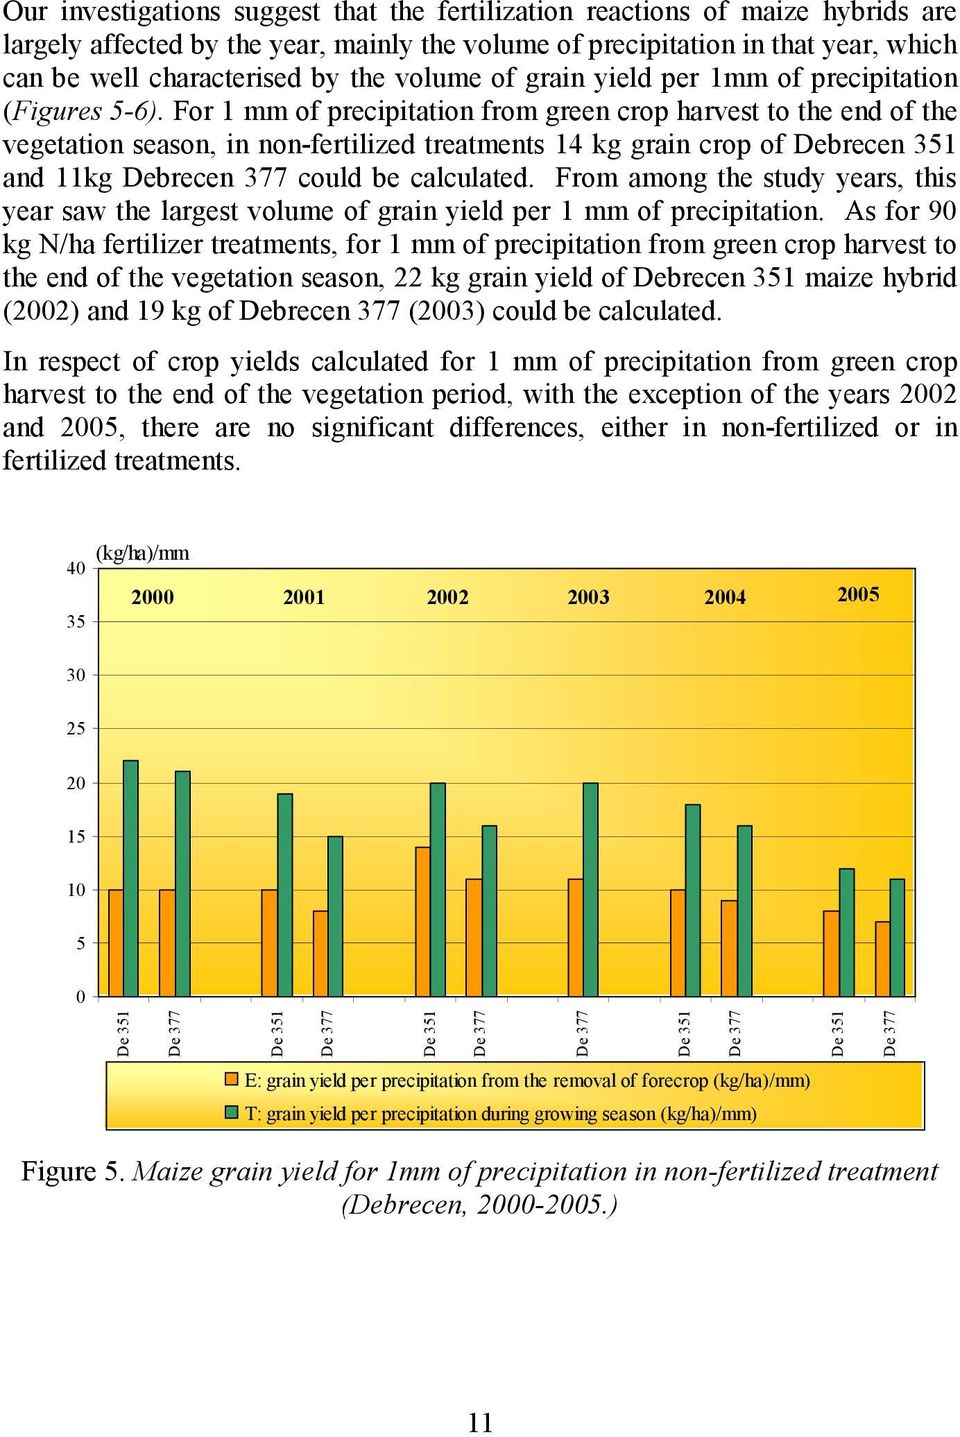 For 1 mm of precipitation from green crop harvest to the end of the vegetation season, in non-fertilized treatments 14 kg grain crop of Debrecen 351 and 11kg Debrecen 377 could be calculated.